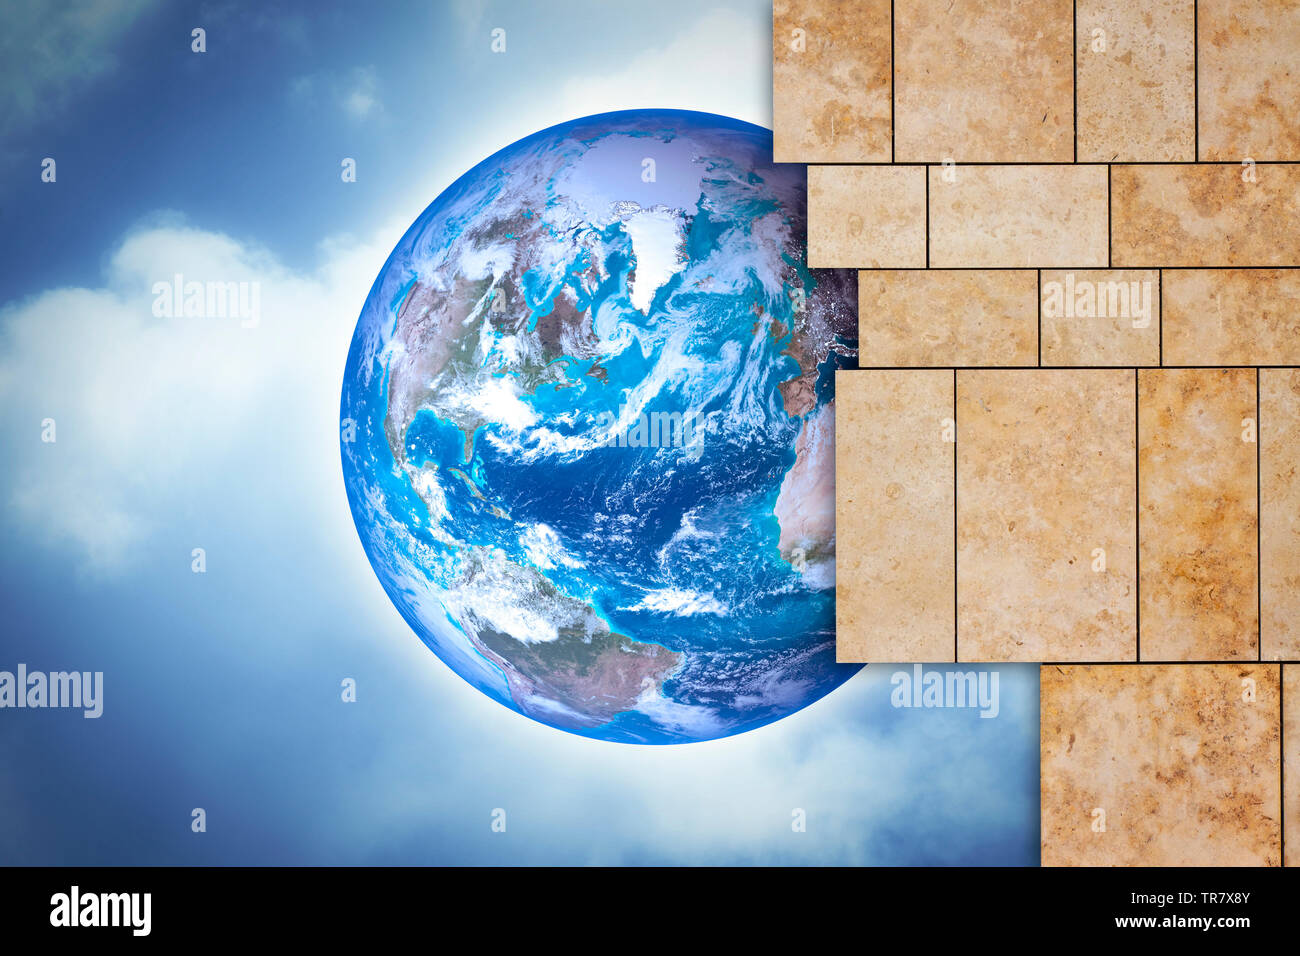 Through a open modern stone wall you can see the world - concept image with copy space - Photo composition with elements furnished by NASA - The image - Stock Image